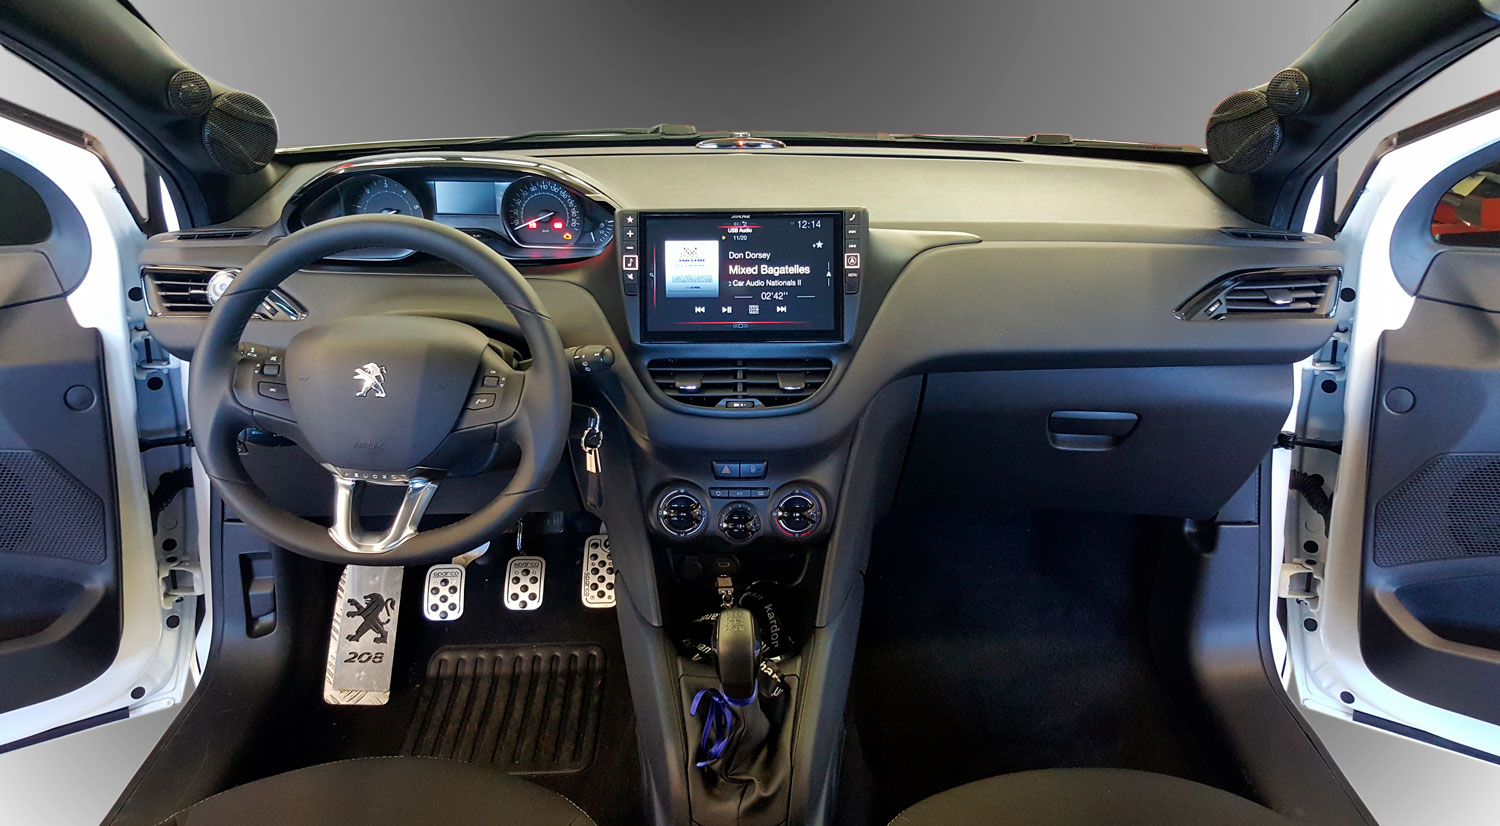 peugeot 208 interni e sistema audio